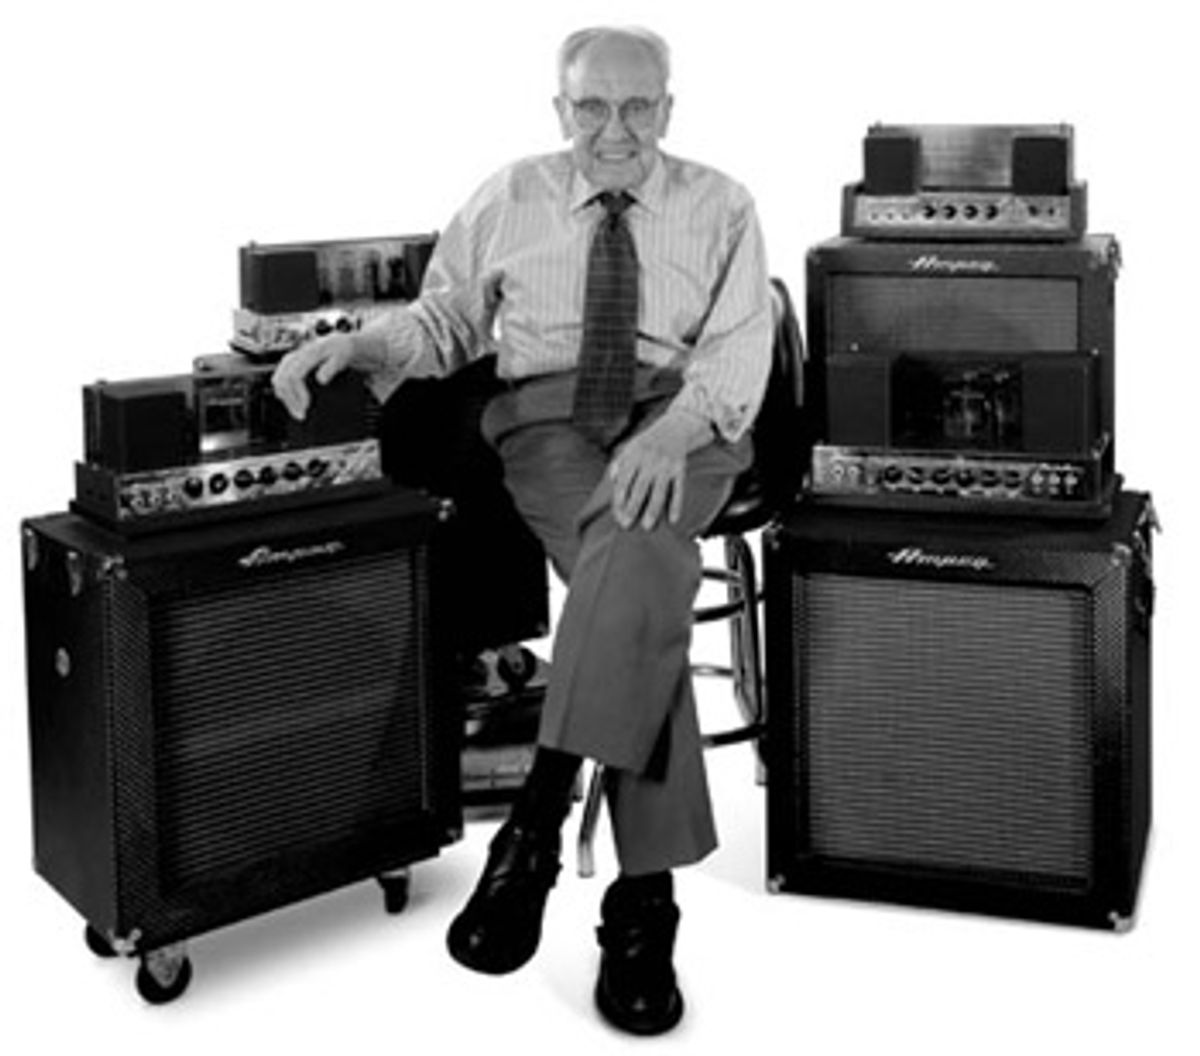 Remembering Jess Oliver, Inventor of the Ampeg B-15